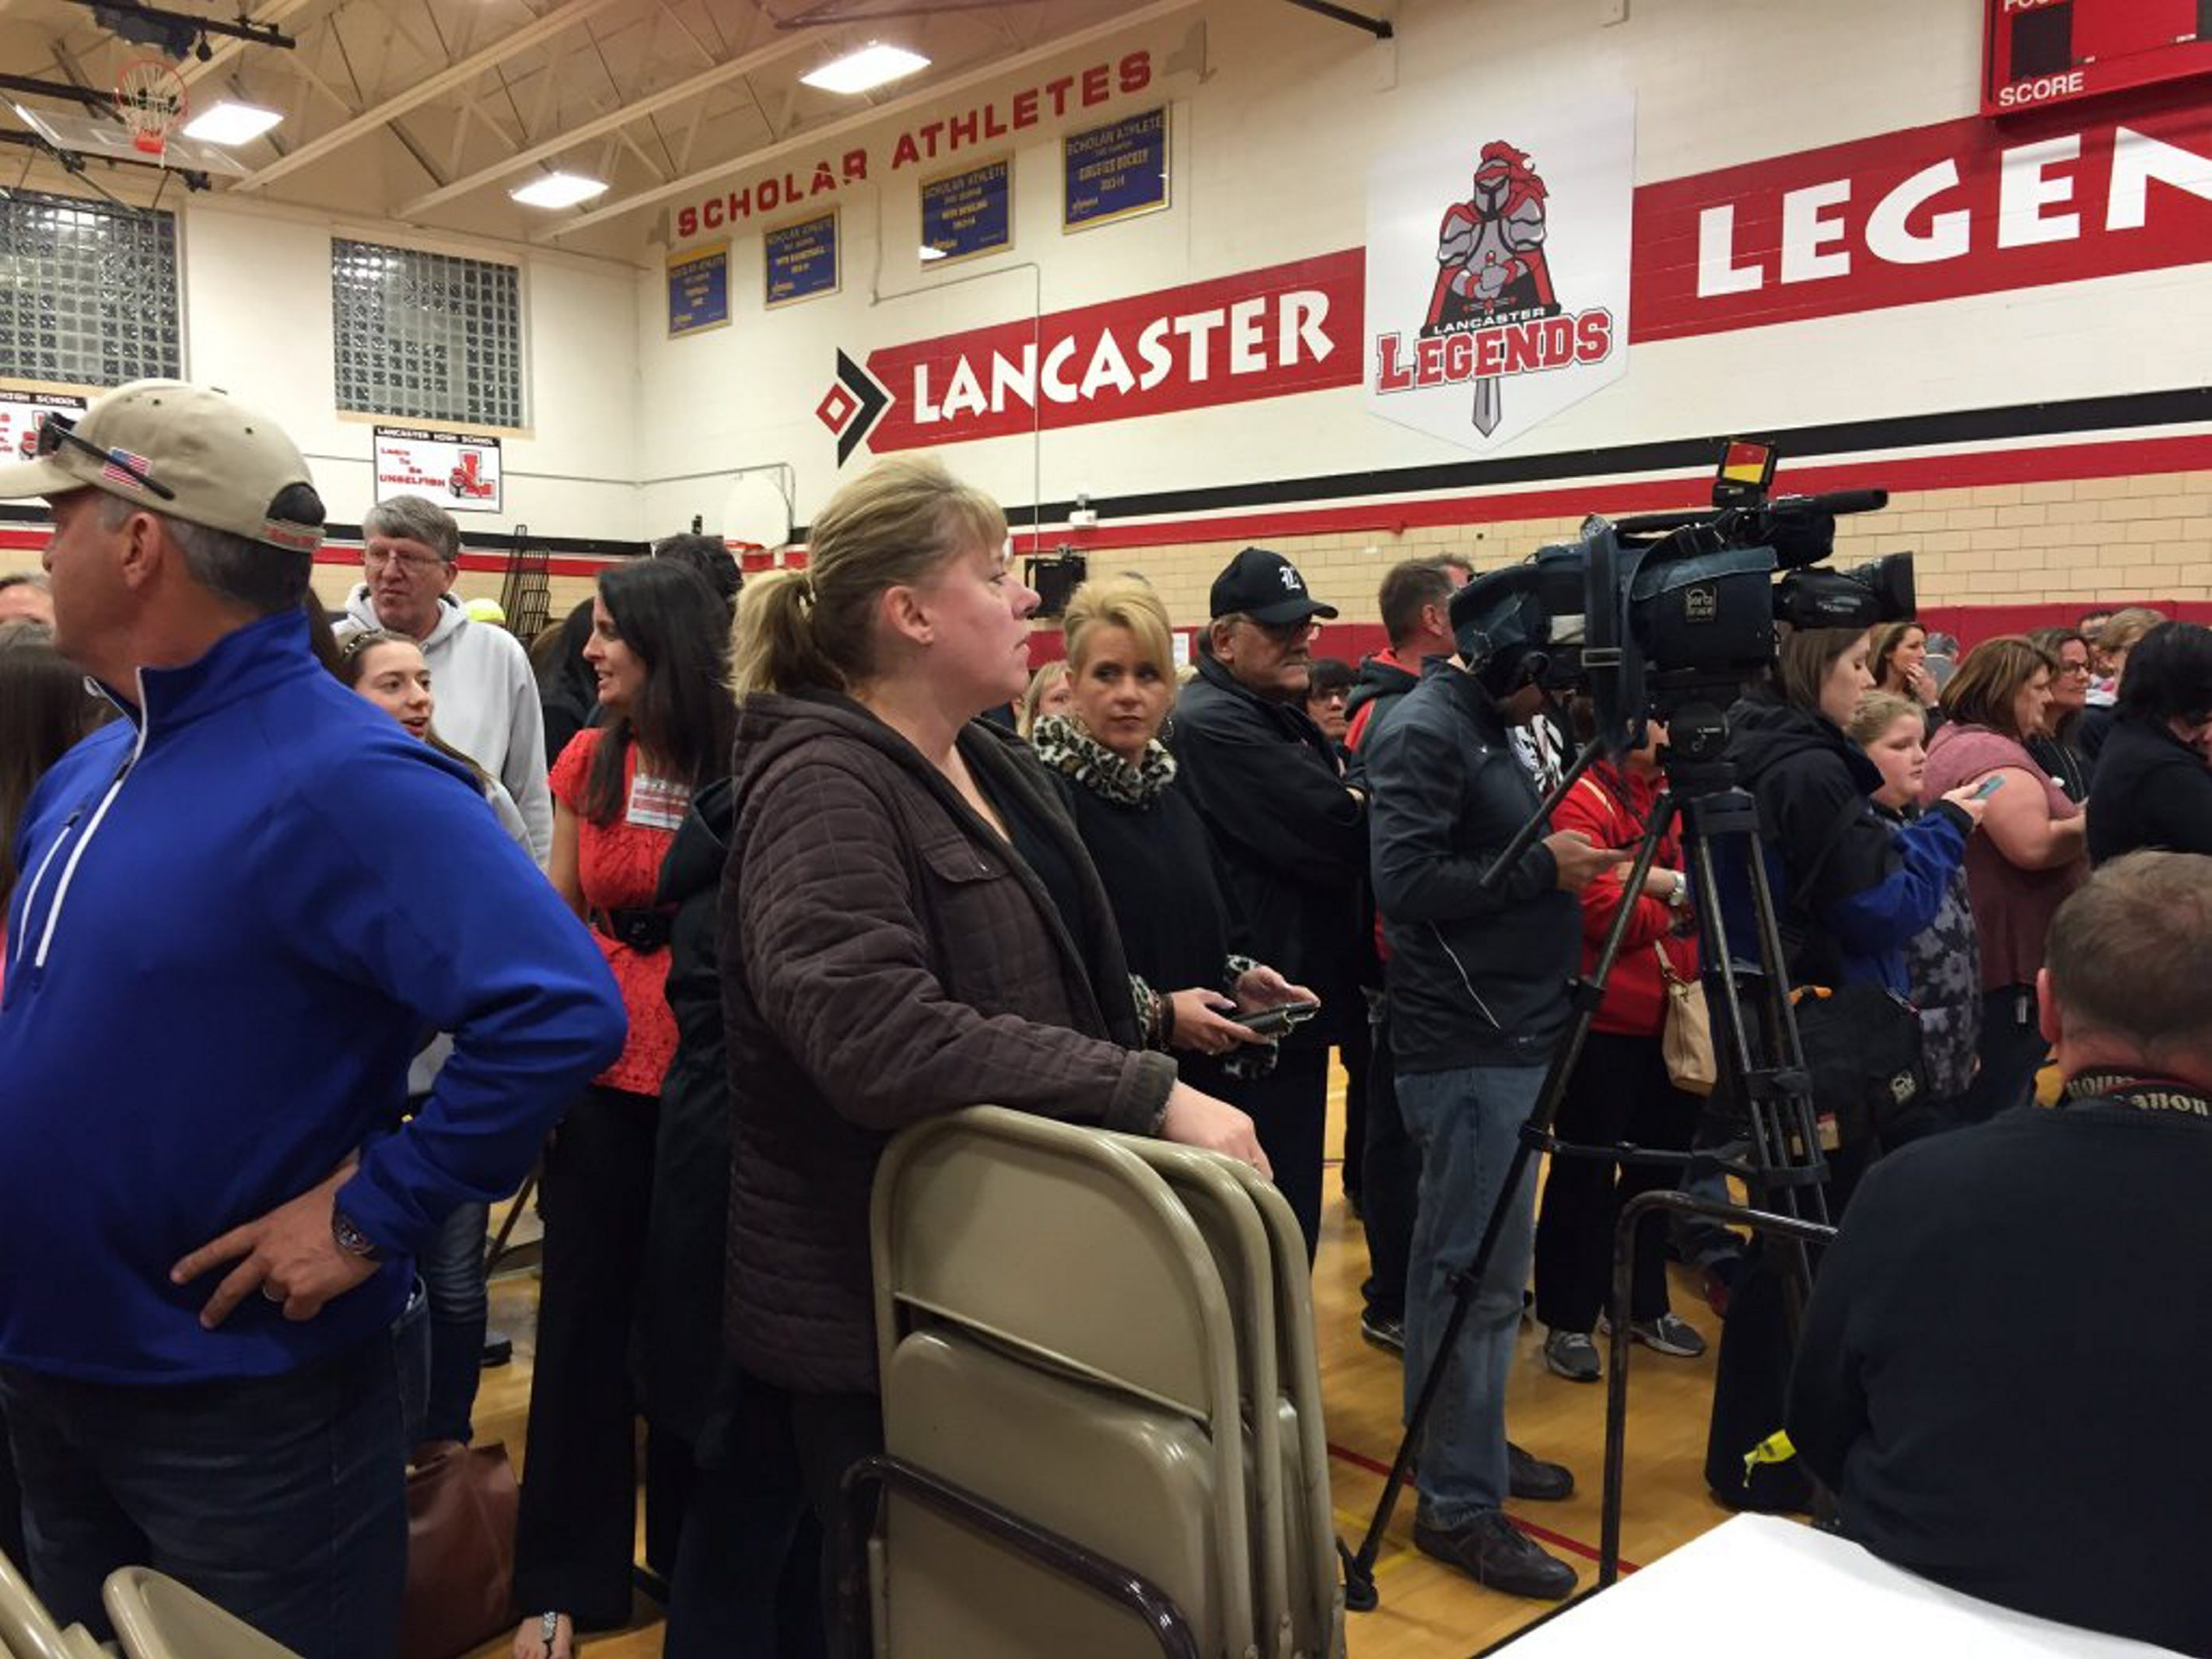 Residents in the Lancaster School District wait to hear results from the school board vote. (Karen Robinson/Buffalo News)